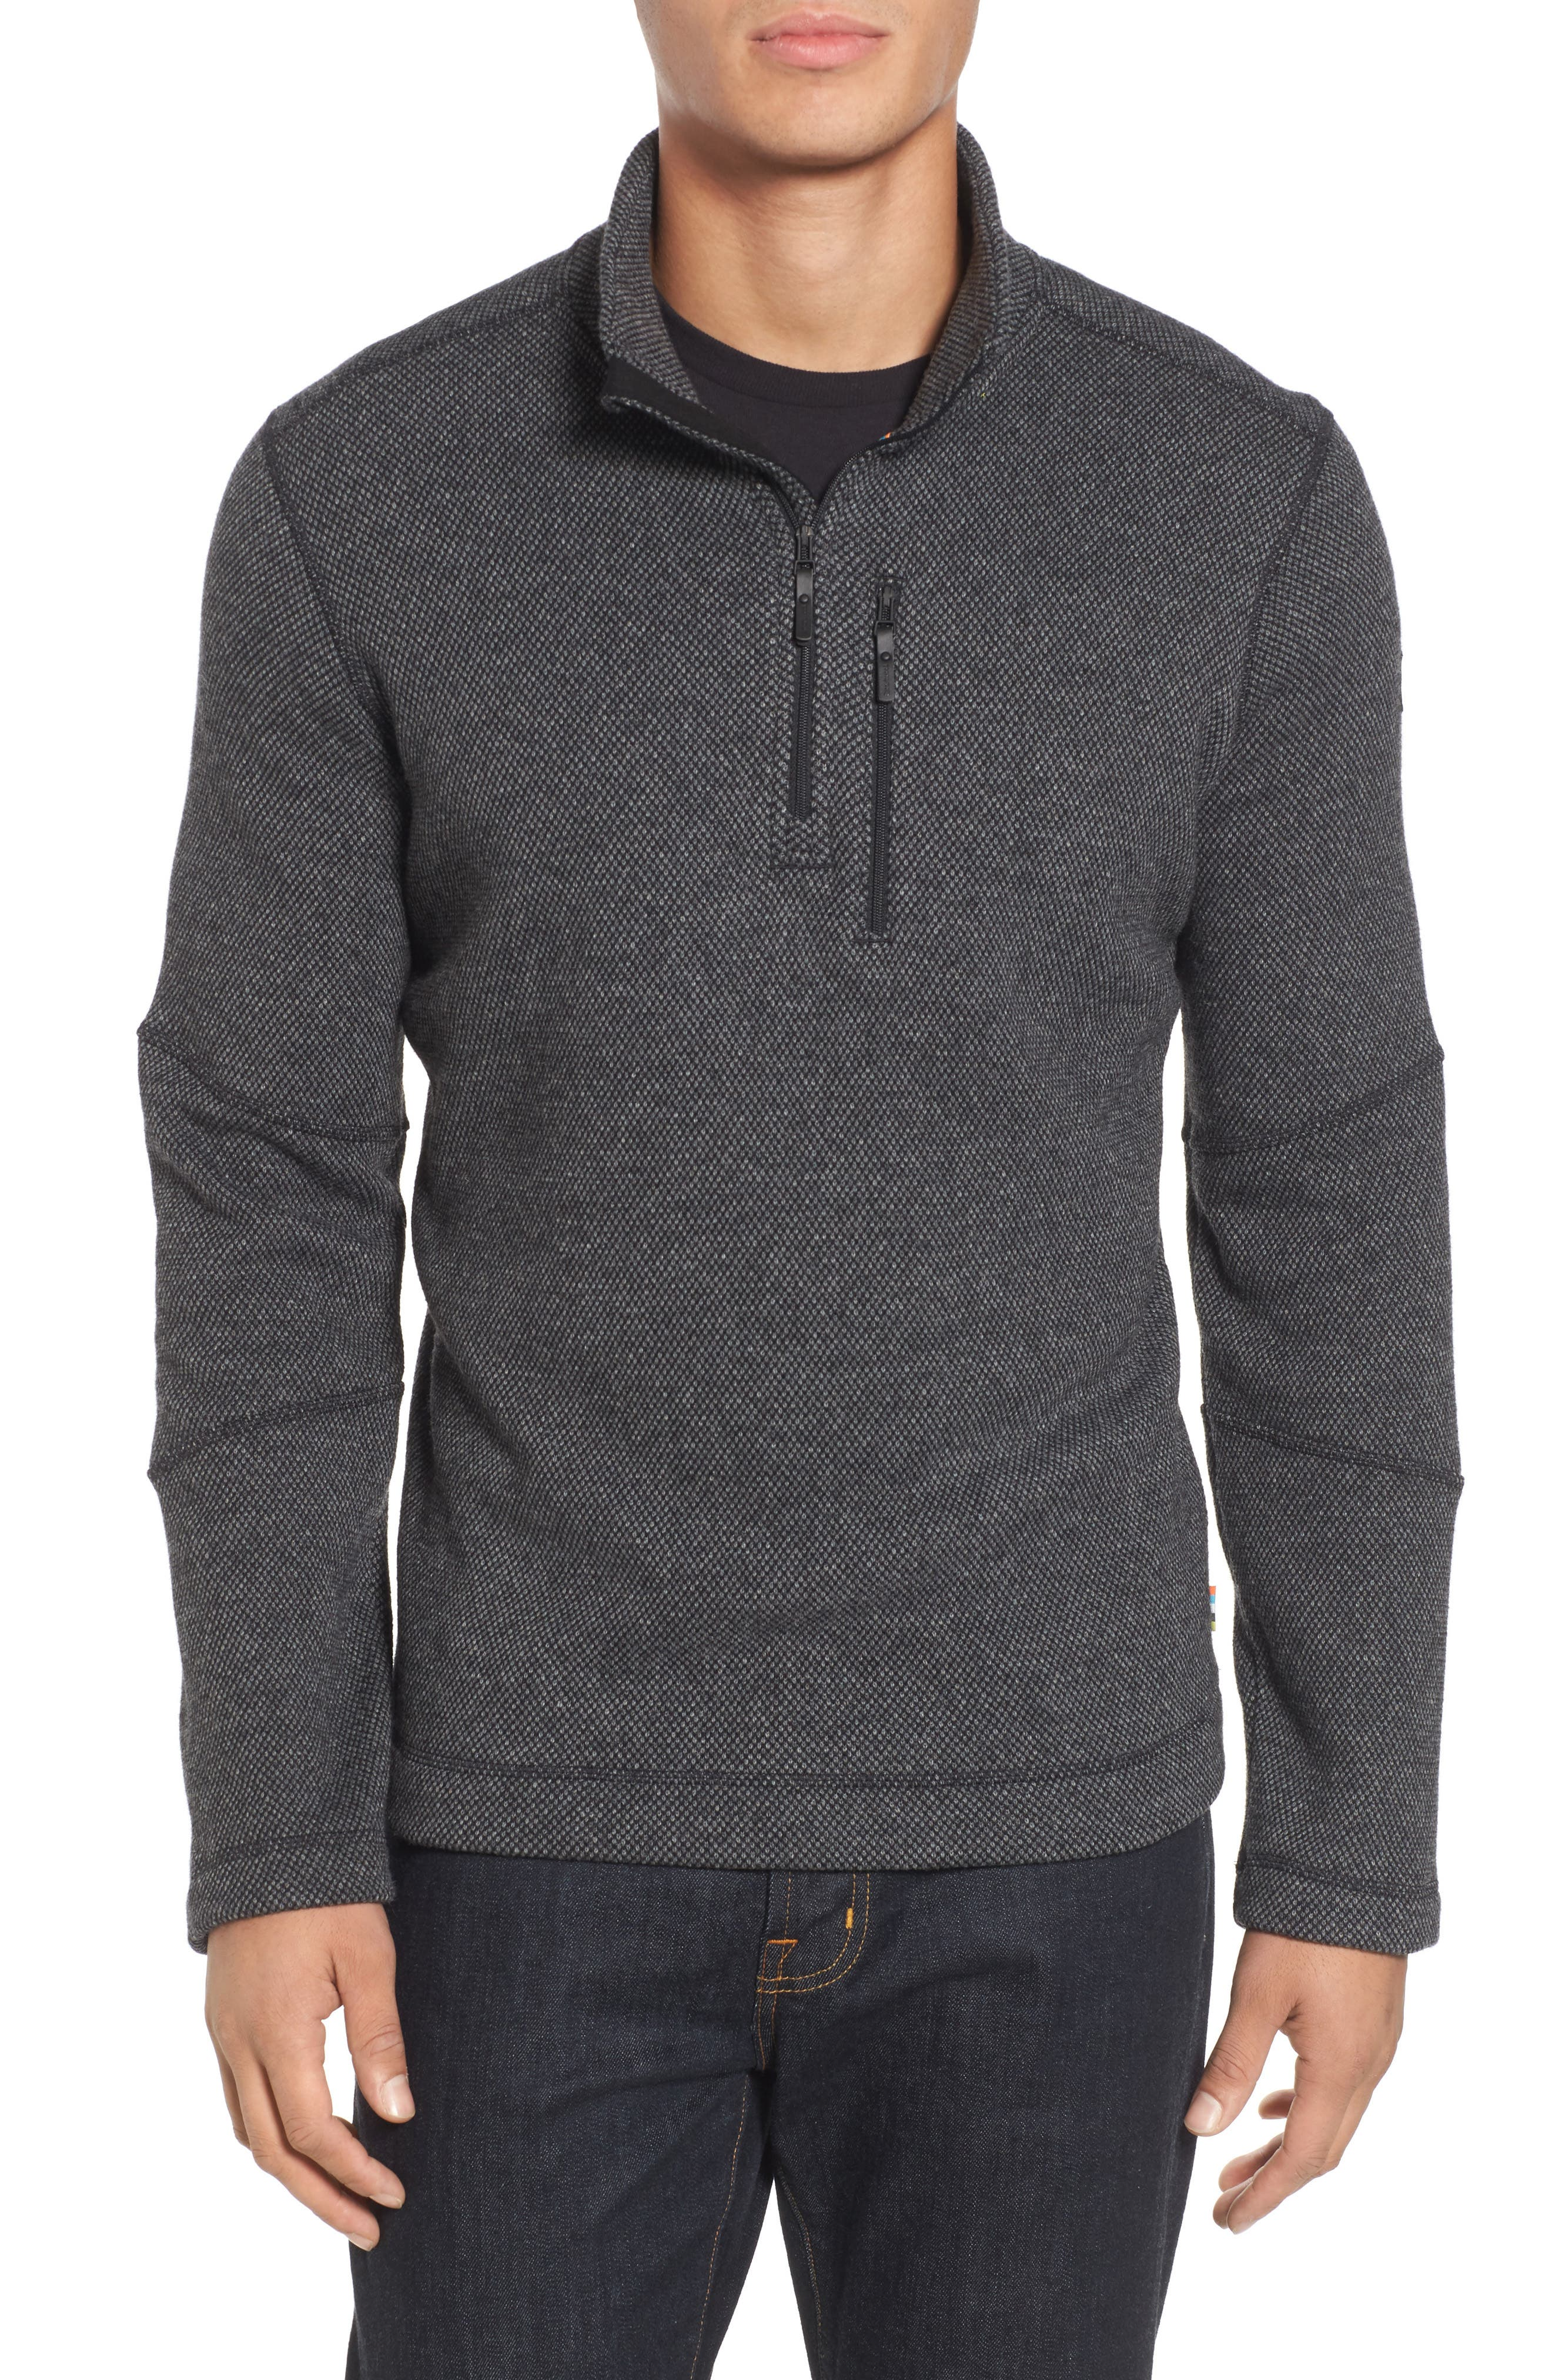 Heritage Trail Fleece Pullover,                             Main thumbnail 1, color,                             020